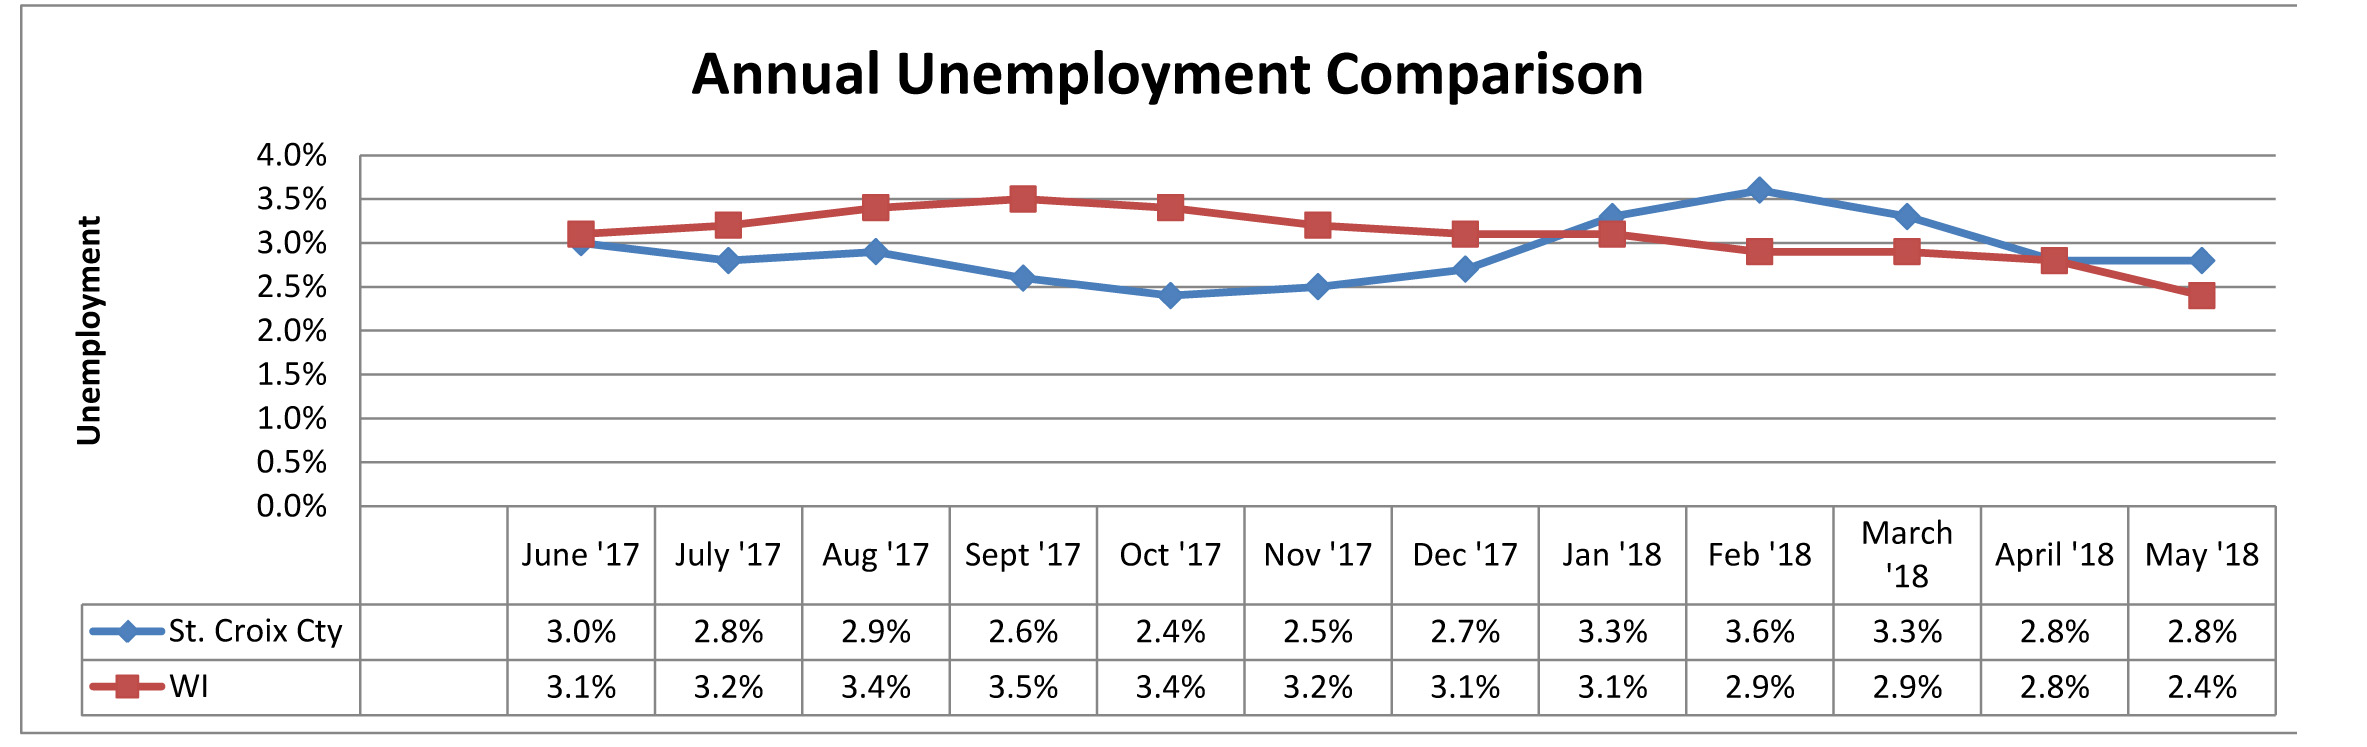 May 2018 Unemployment Comparison